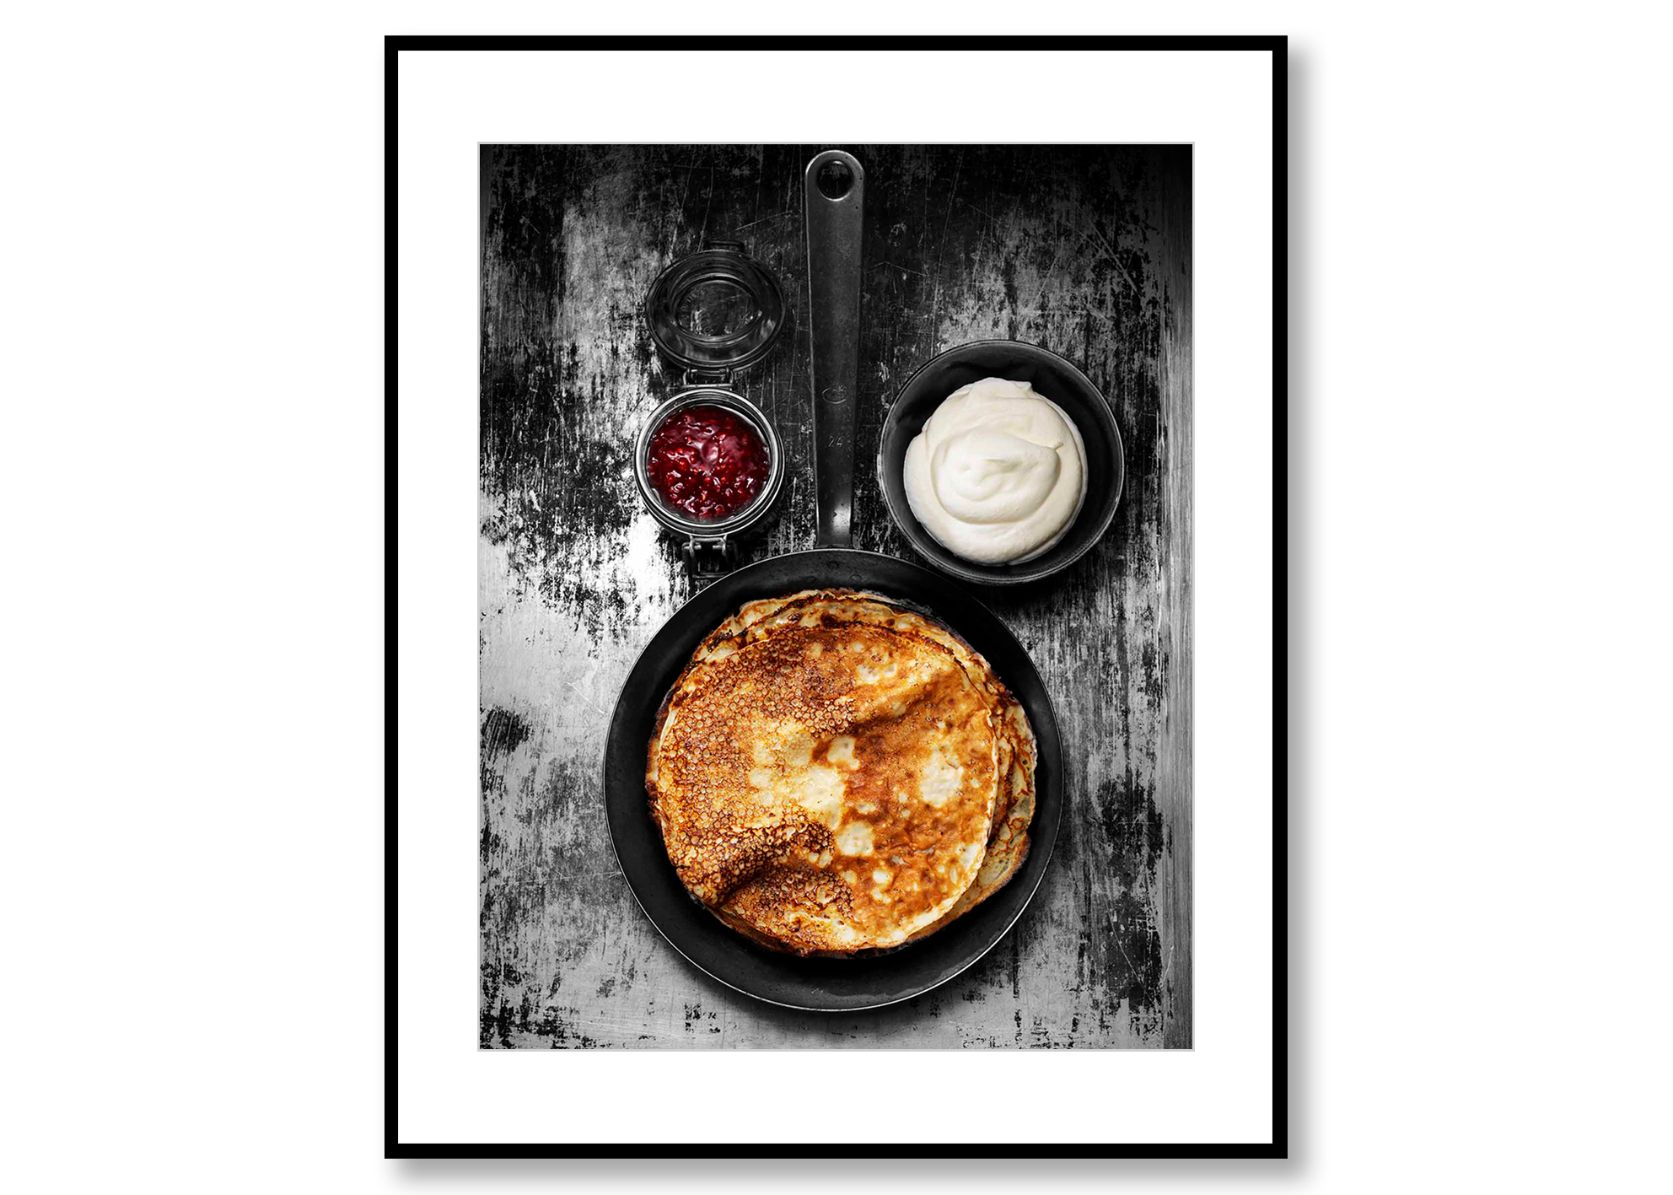 Pancakes. Food Art. Prints for sale. Photo by Fredrik Rege